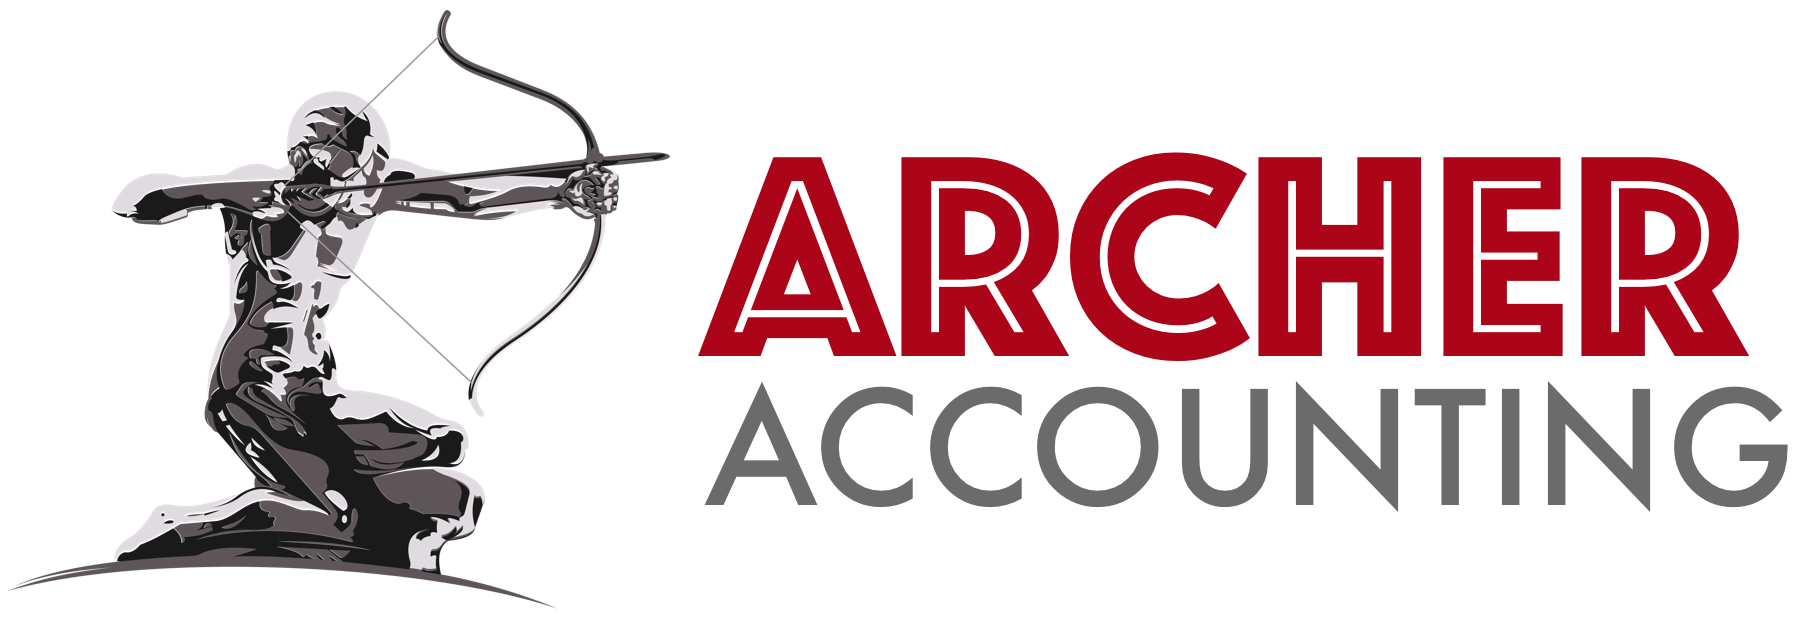 Archer Accounting Services Ltd. | Calgary Small Business & Corporate Finance